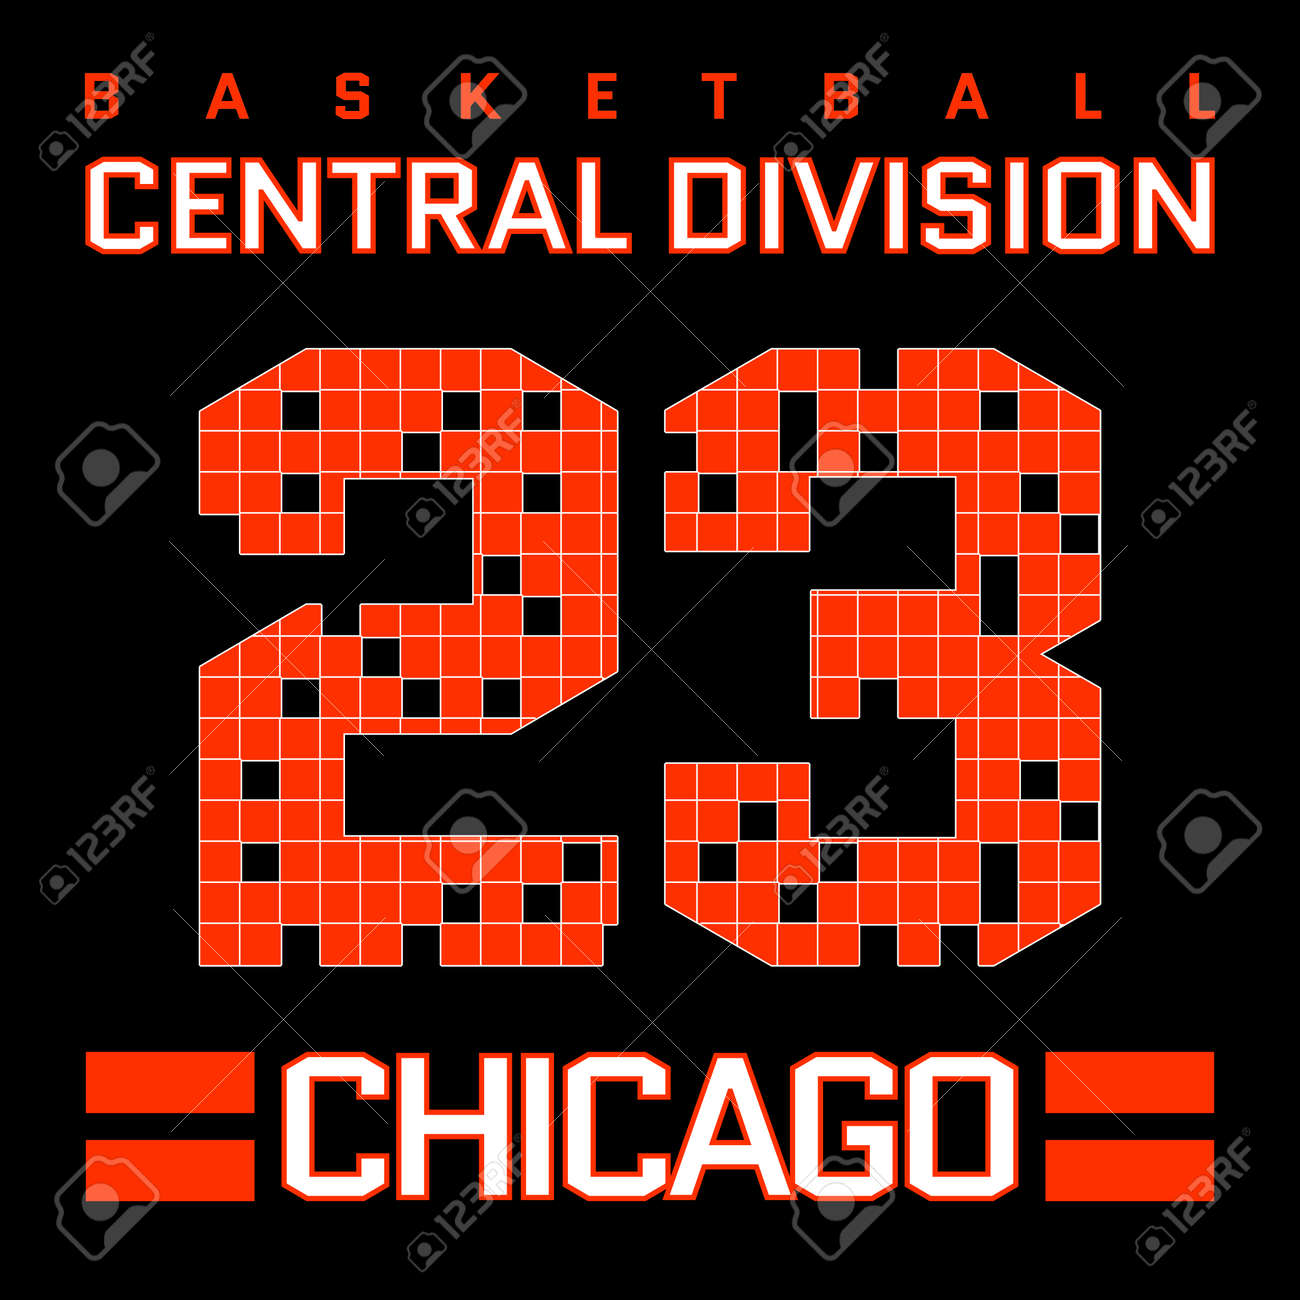 75184bb4 Basketball Chicago Typography Graphics. Mans T-shirt Printing Design.  Fashion Print for sportswear